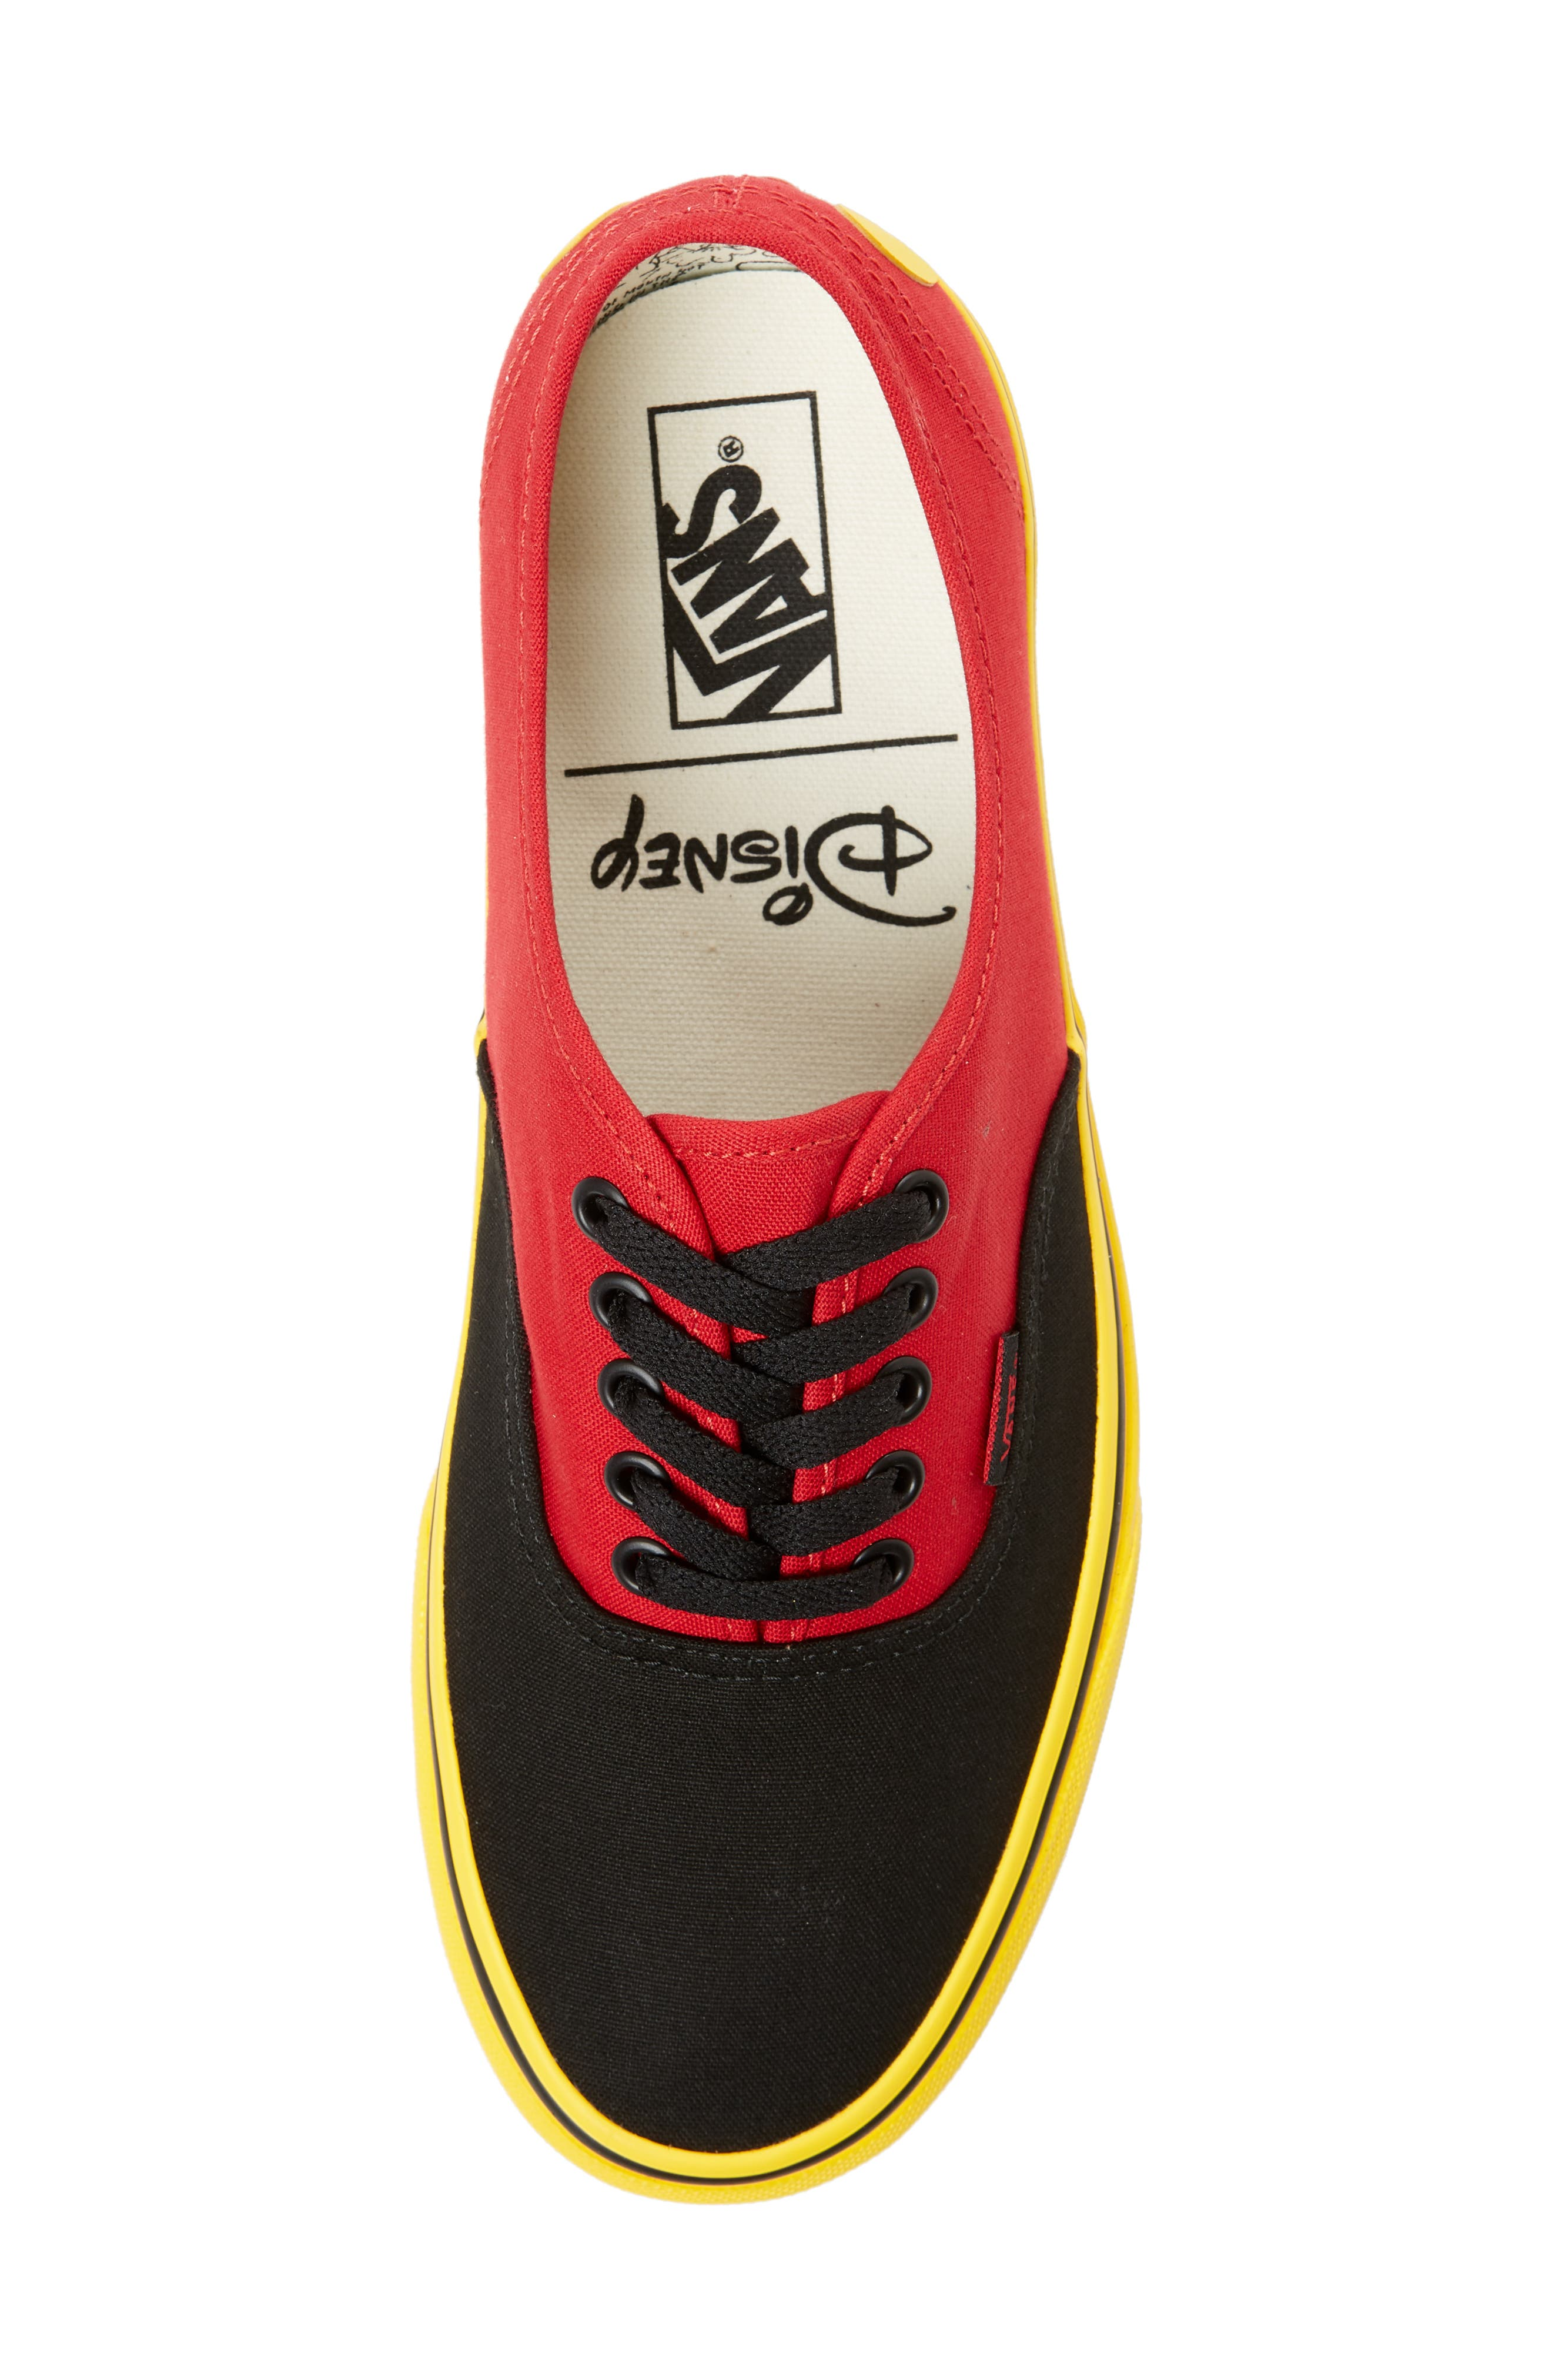 x Disney<sup>®</sup> Authentic Low Top Sneaker,                             Alternate thumbnail 5, color,                             DISNEY MICKEY/ RED/ YELLOW